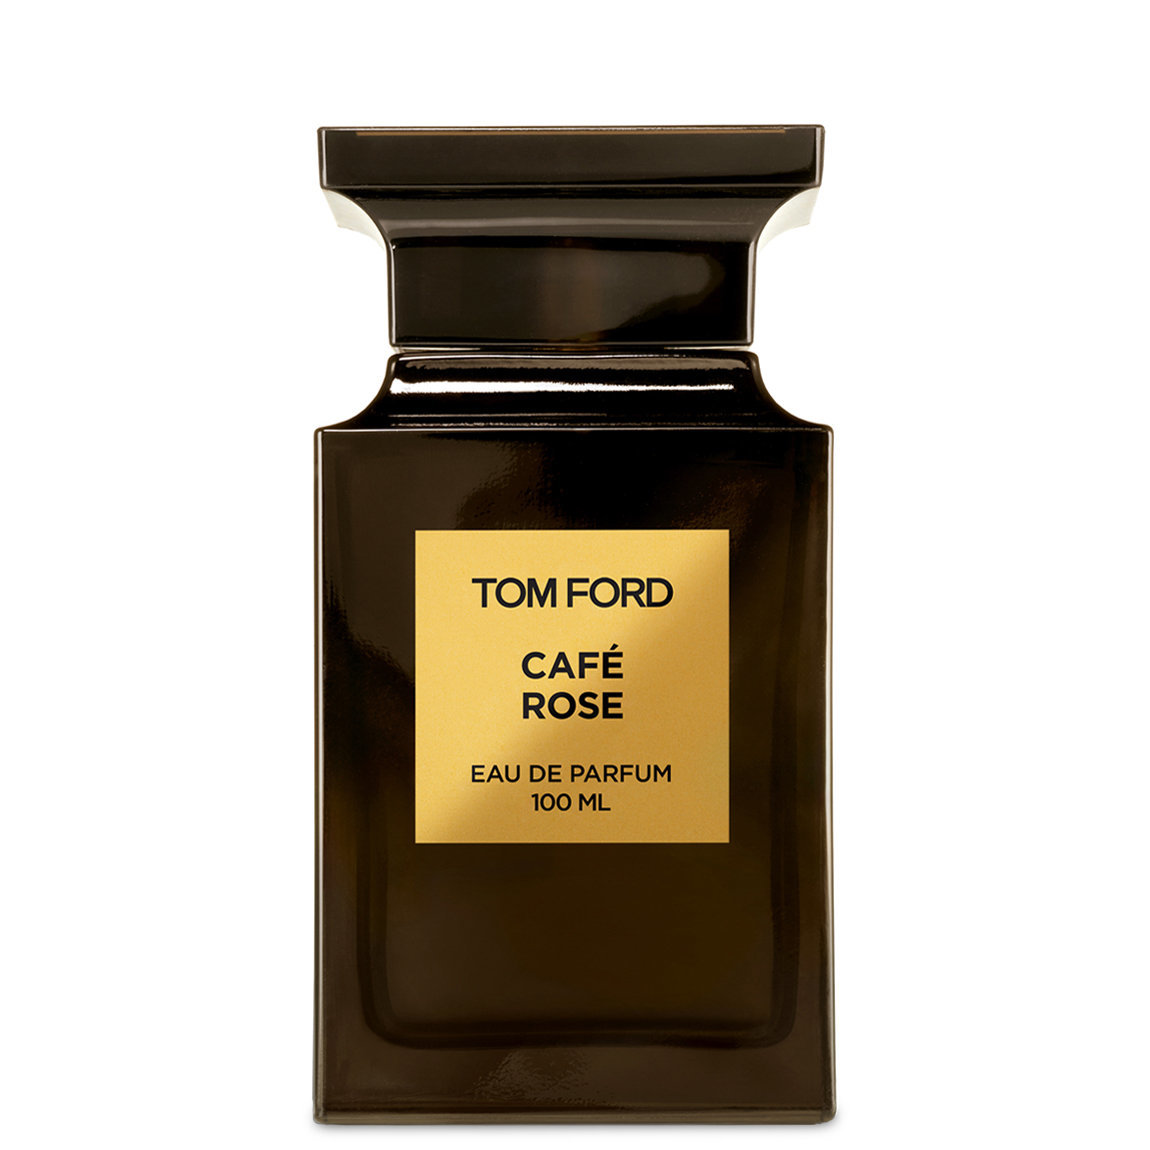 TOM FORD Café Rose 100 ml product swatch.